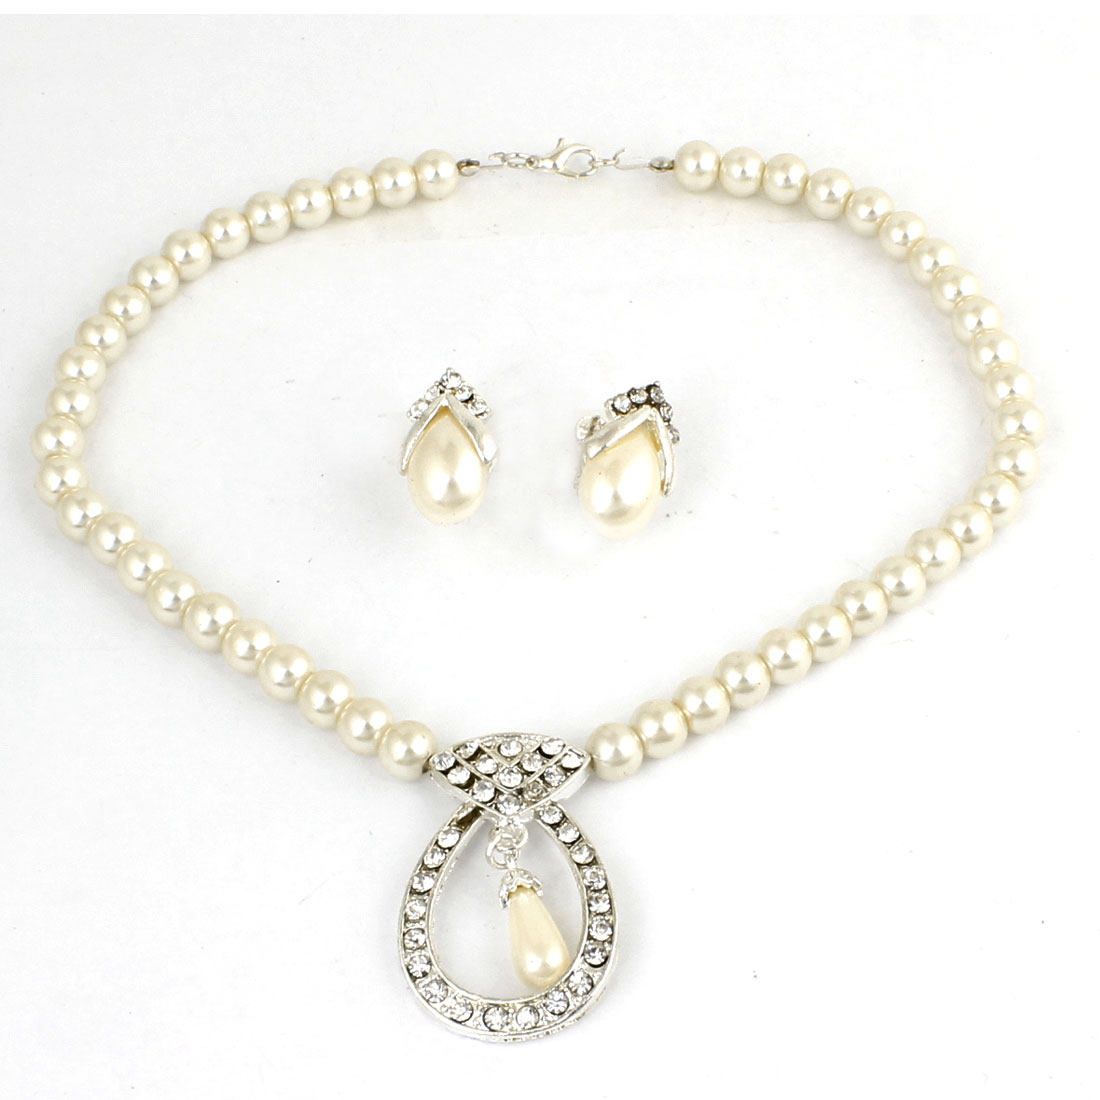 Woman Rhinestone Oval Circle Pendant Necklace + Beads Clip Earrings